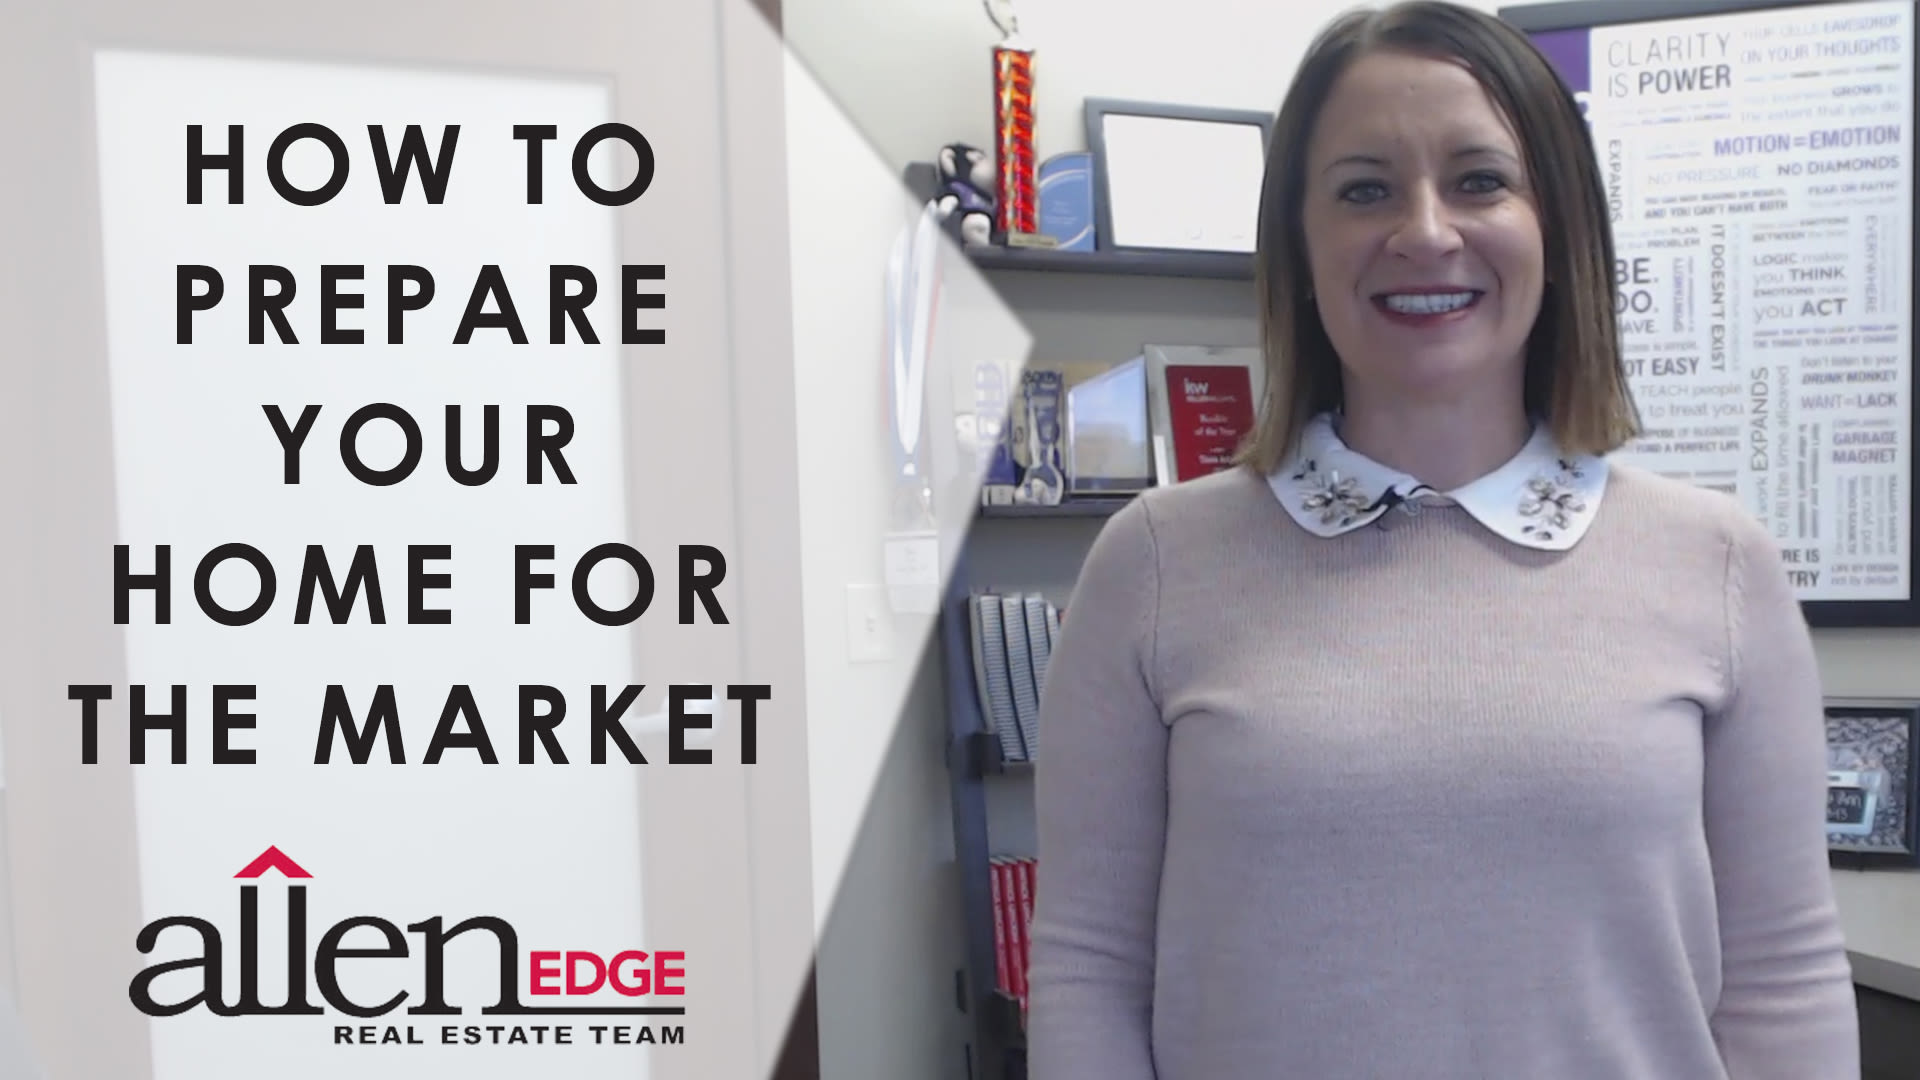 Need to Get Your Property Market-Ready? Follow These 3 Steps